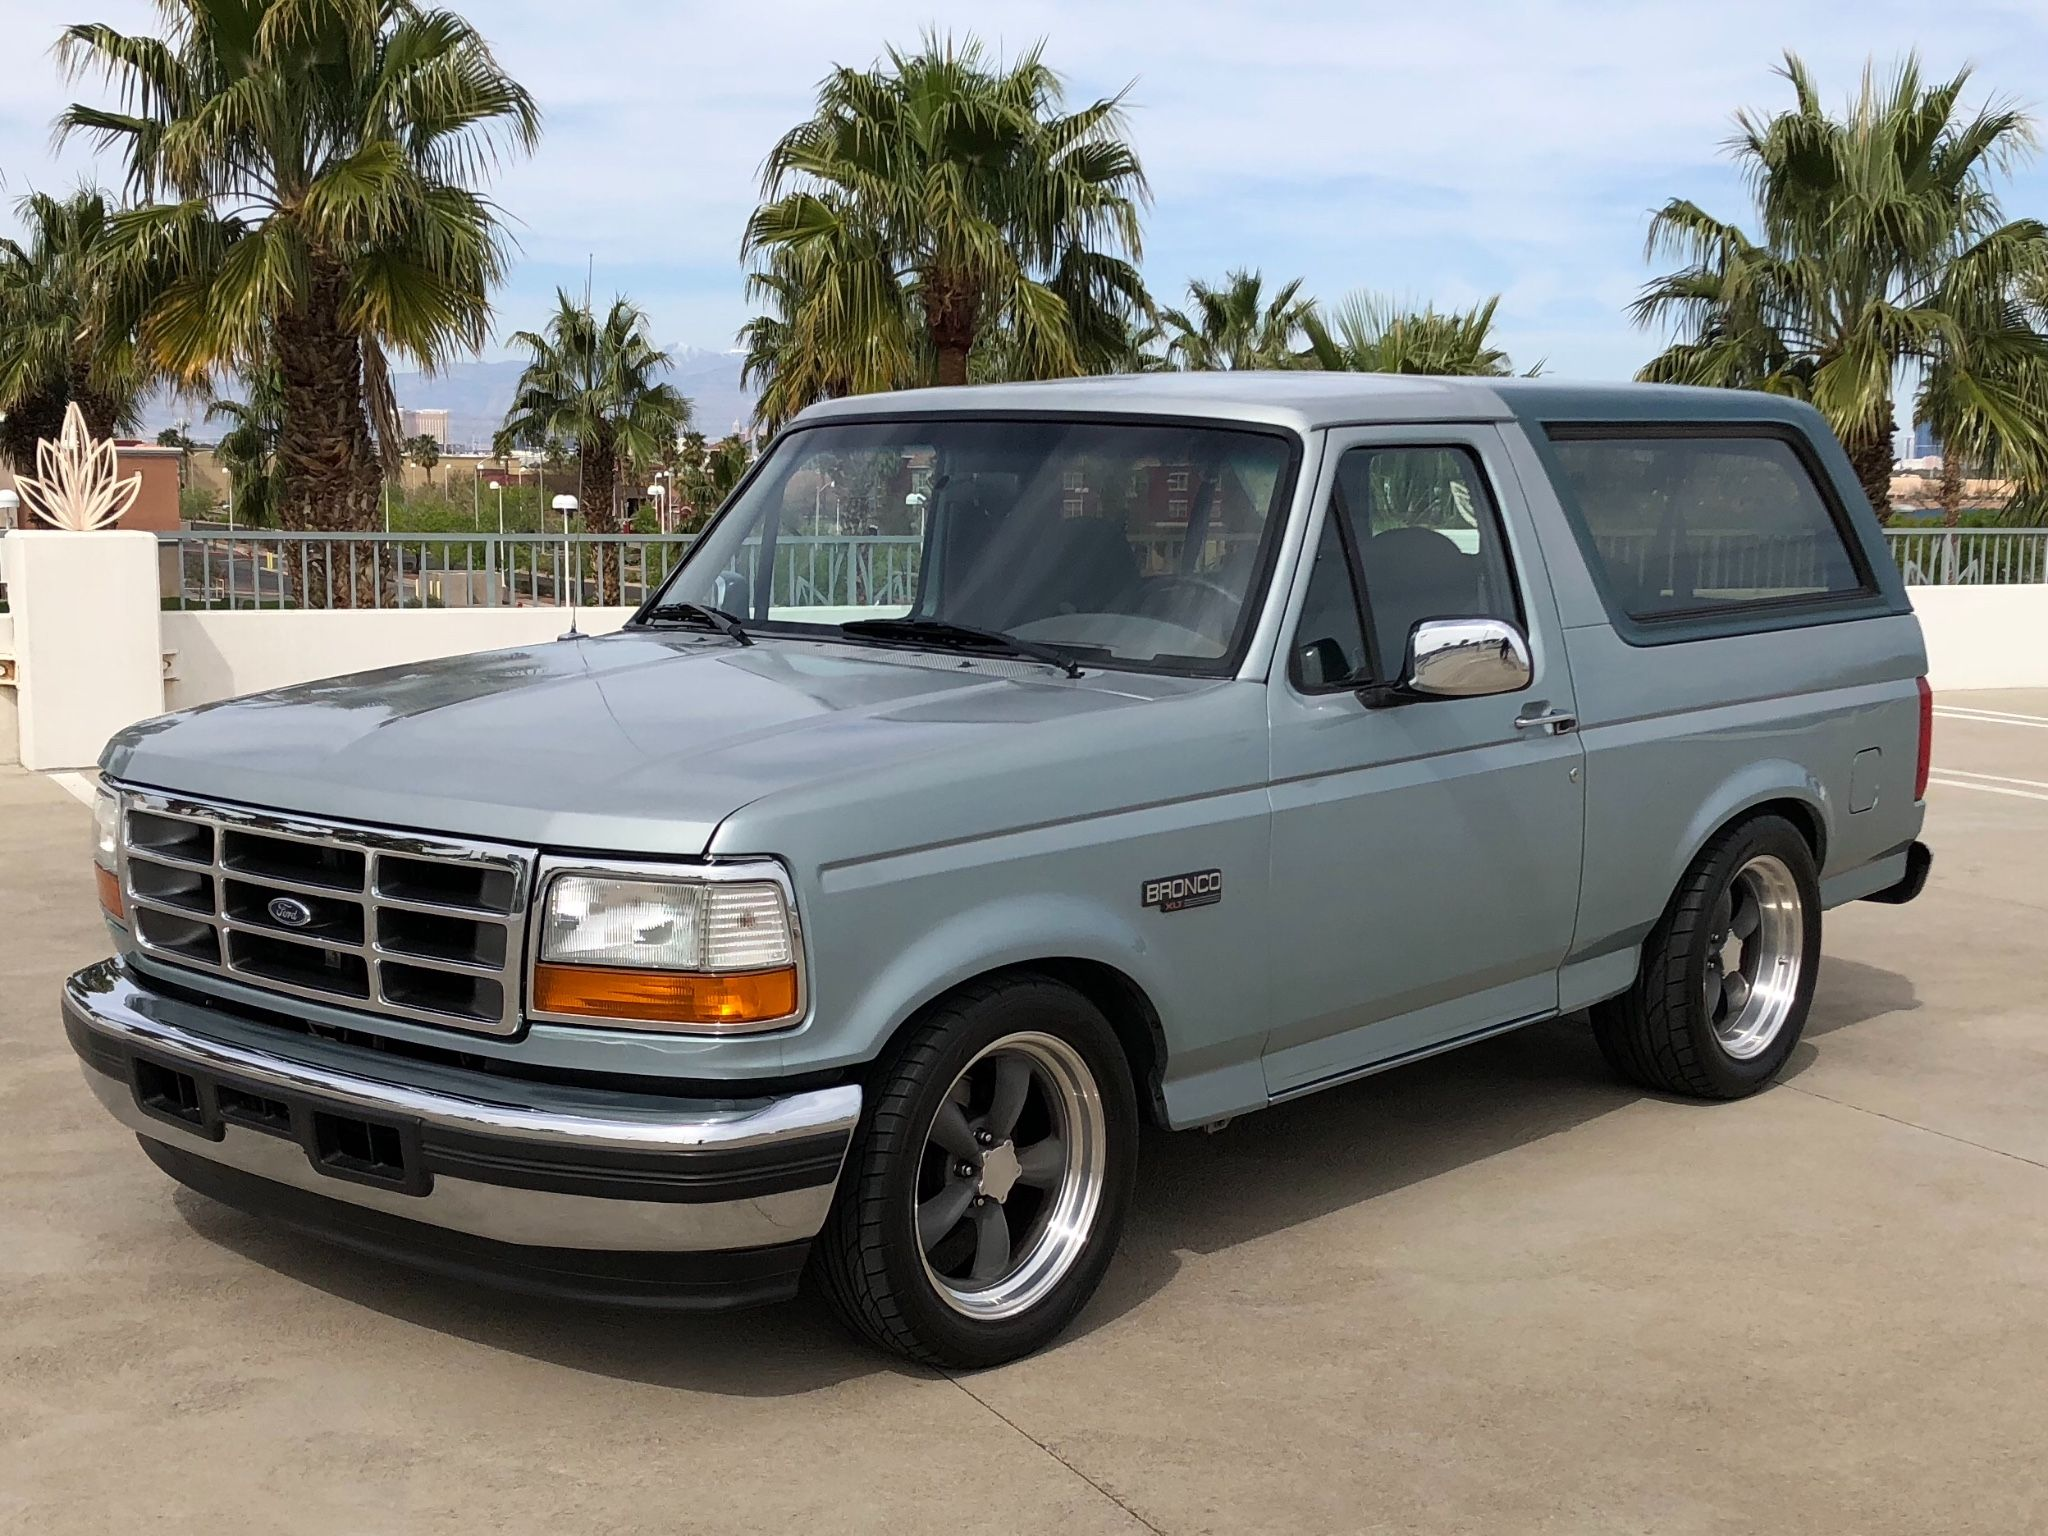 Bronco Ford Mustang Coupe Ford Suv Ford Bronco